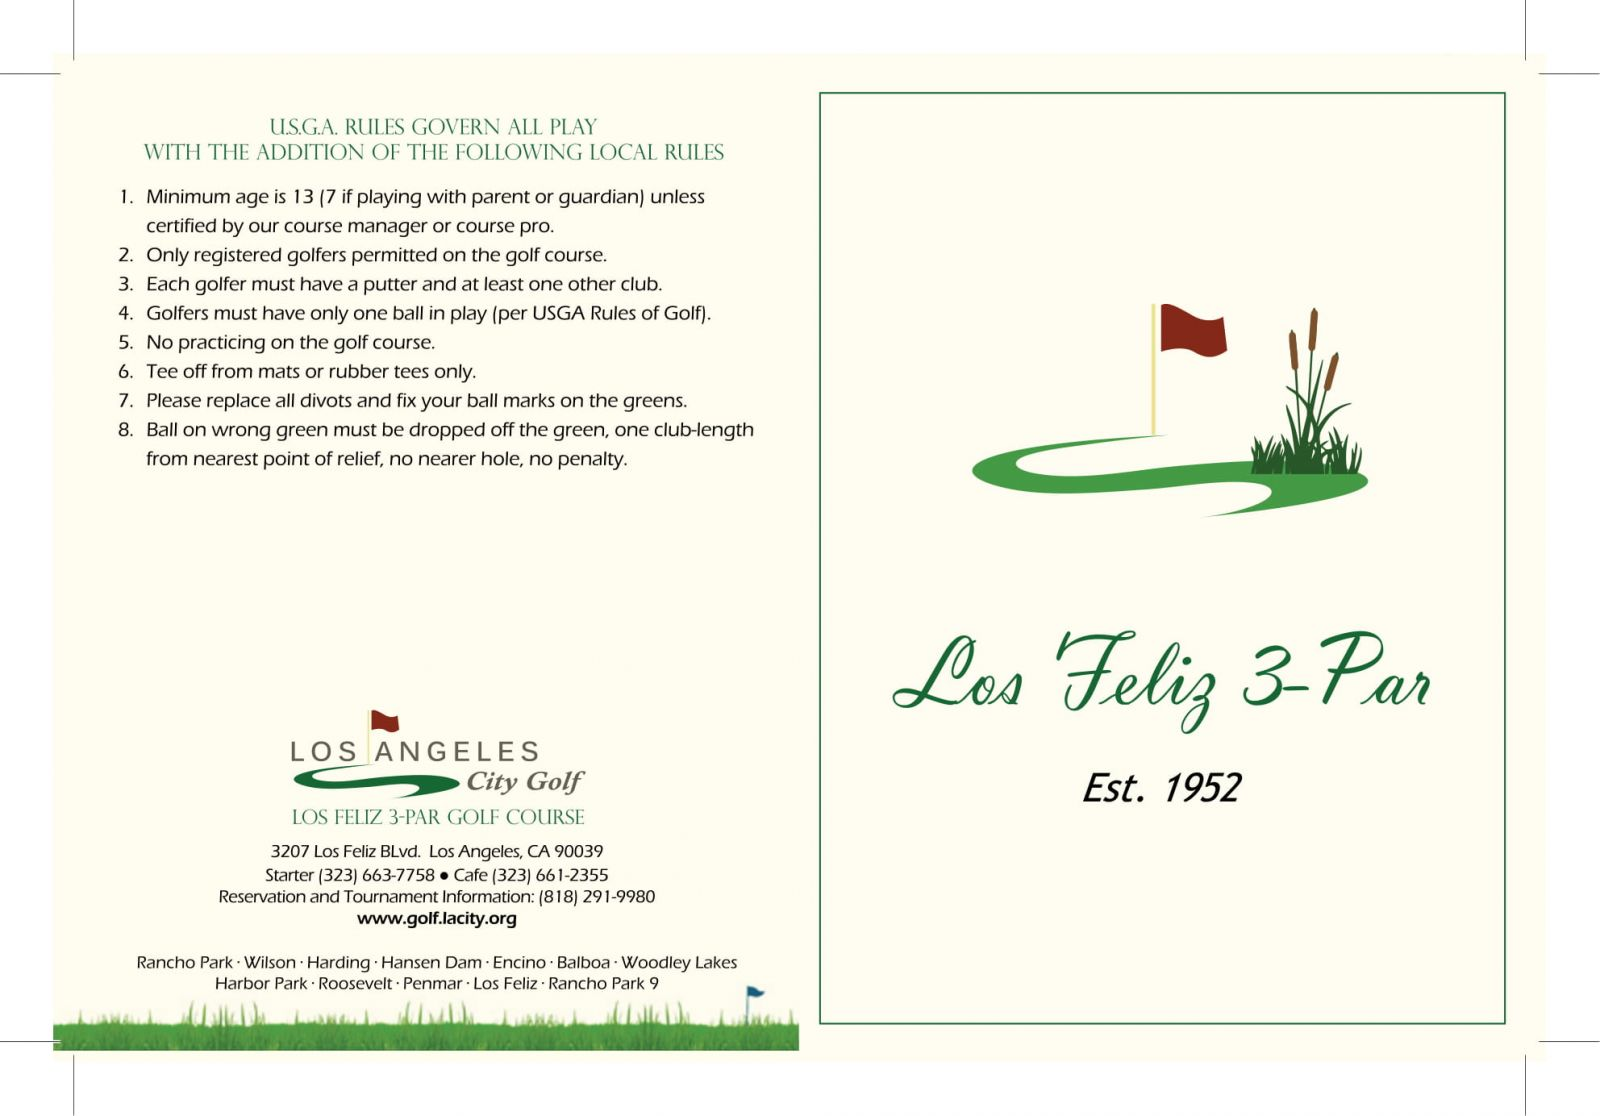 Los Feliz 3-Par Golf Course scorecard outside